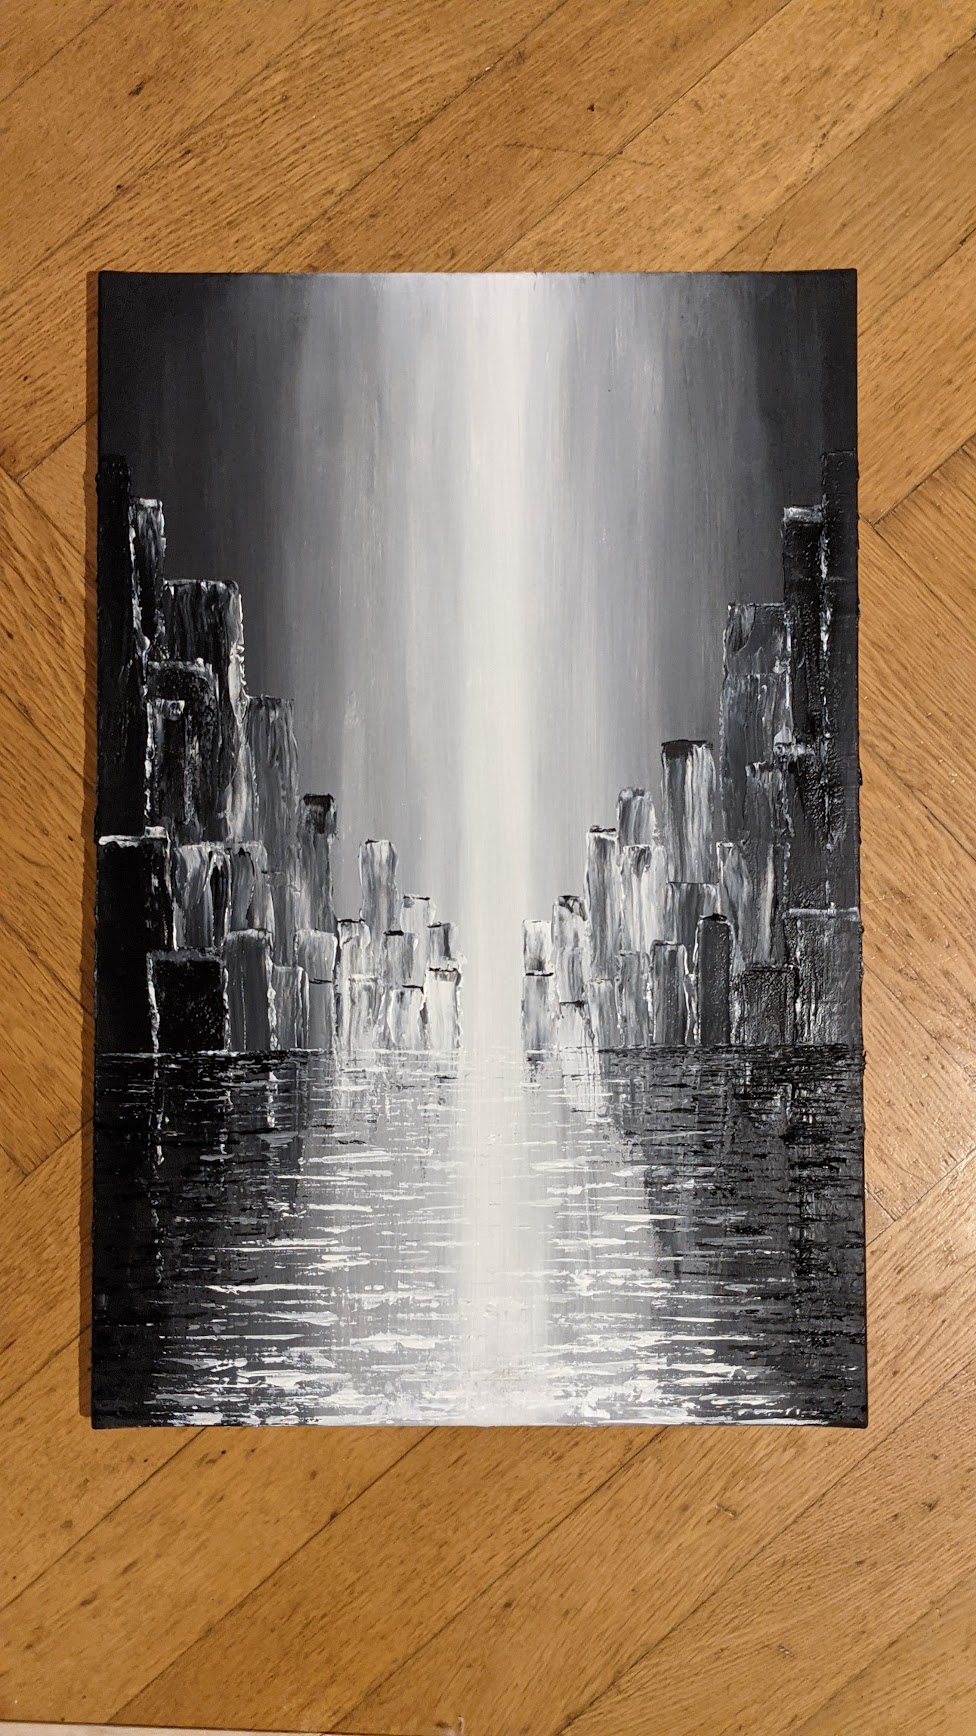 acrylic on canvas, 60 x 40cm, by Michal Cáb